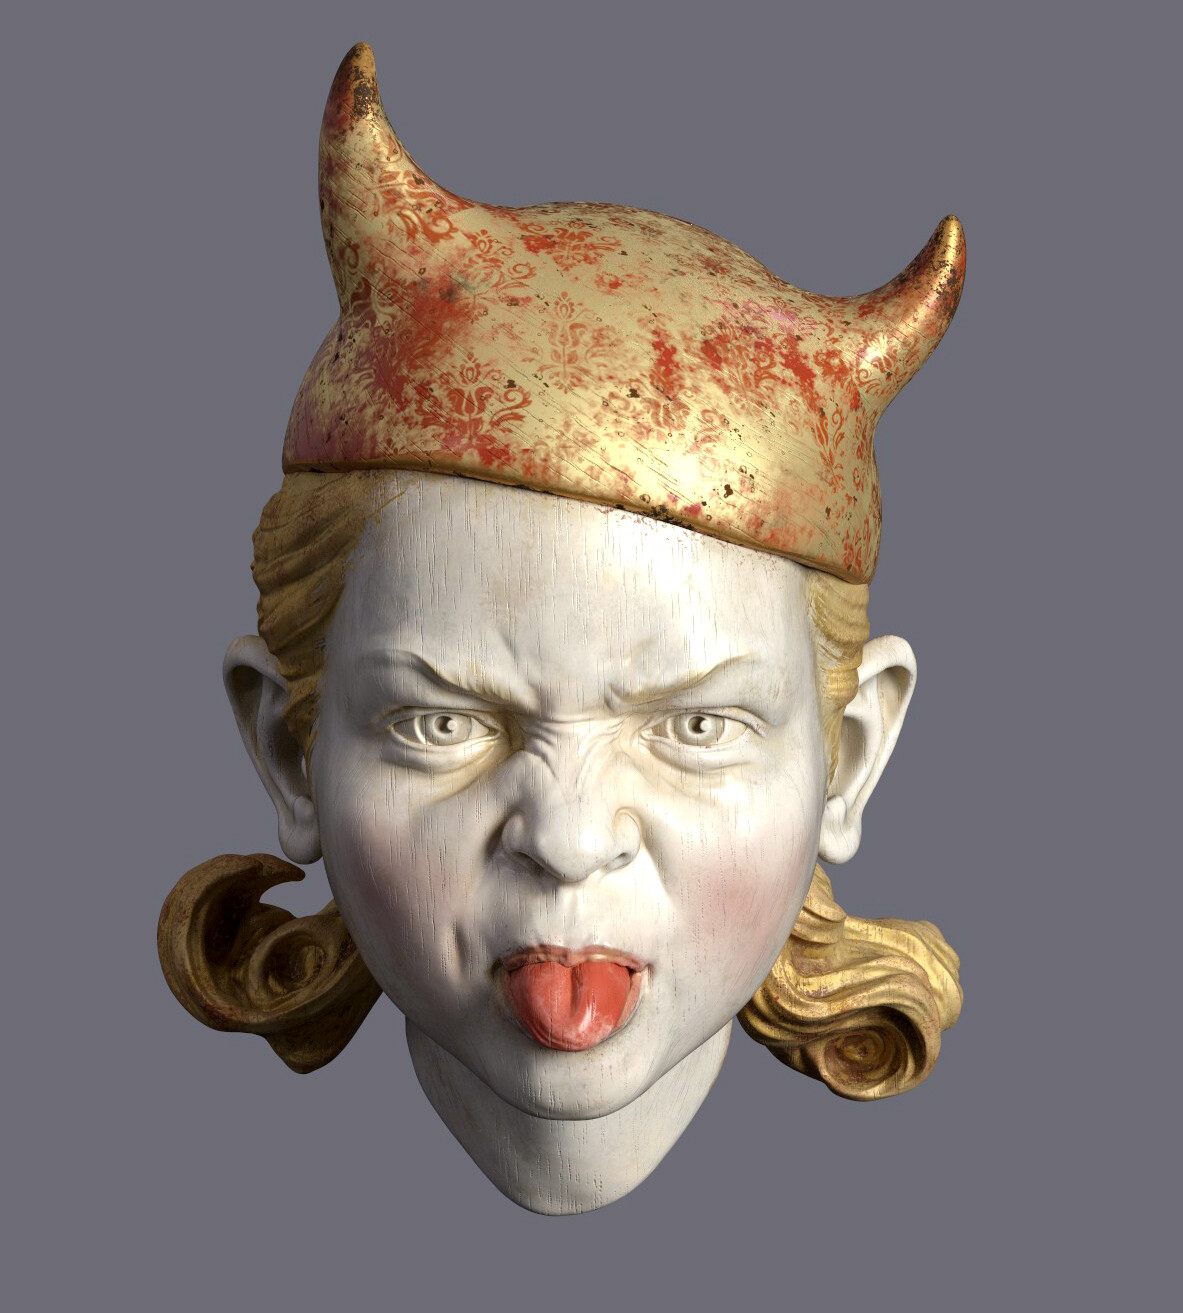 little devil - Zbrush sketch, textured in Substance Painter. I wanted to try a polychrome sculpture look